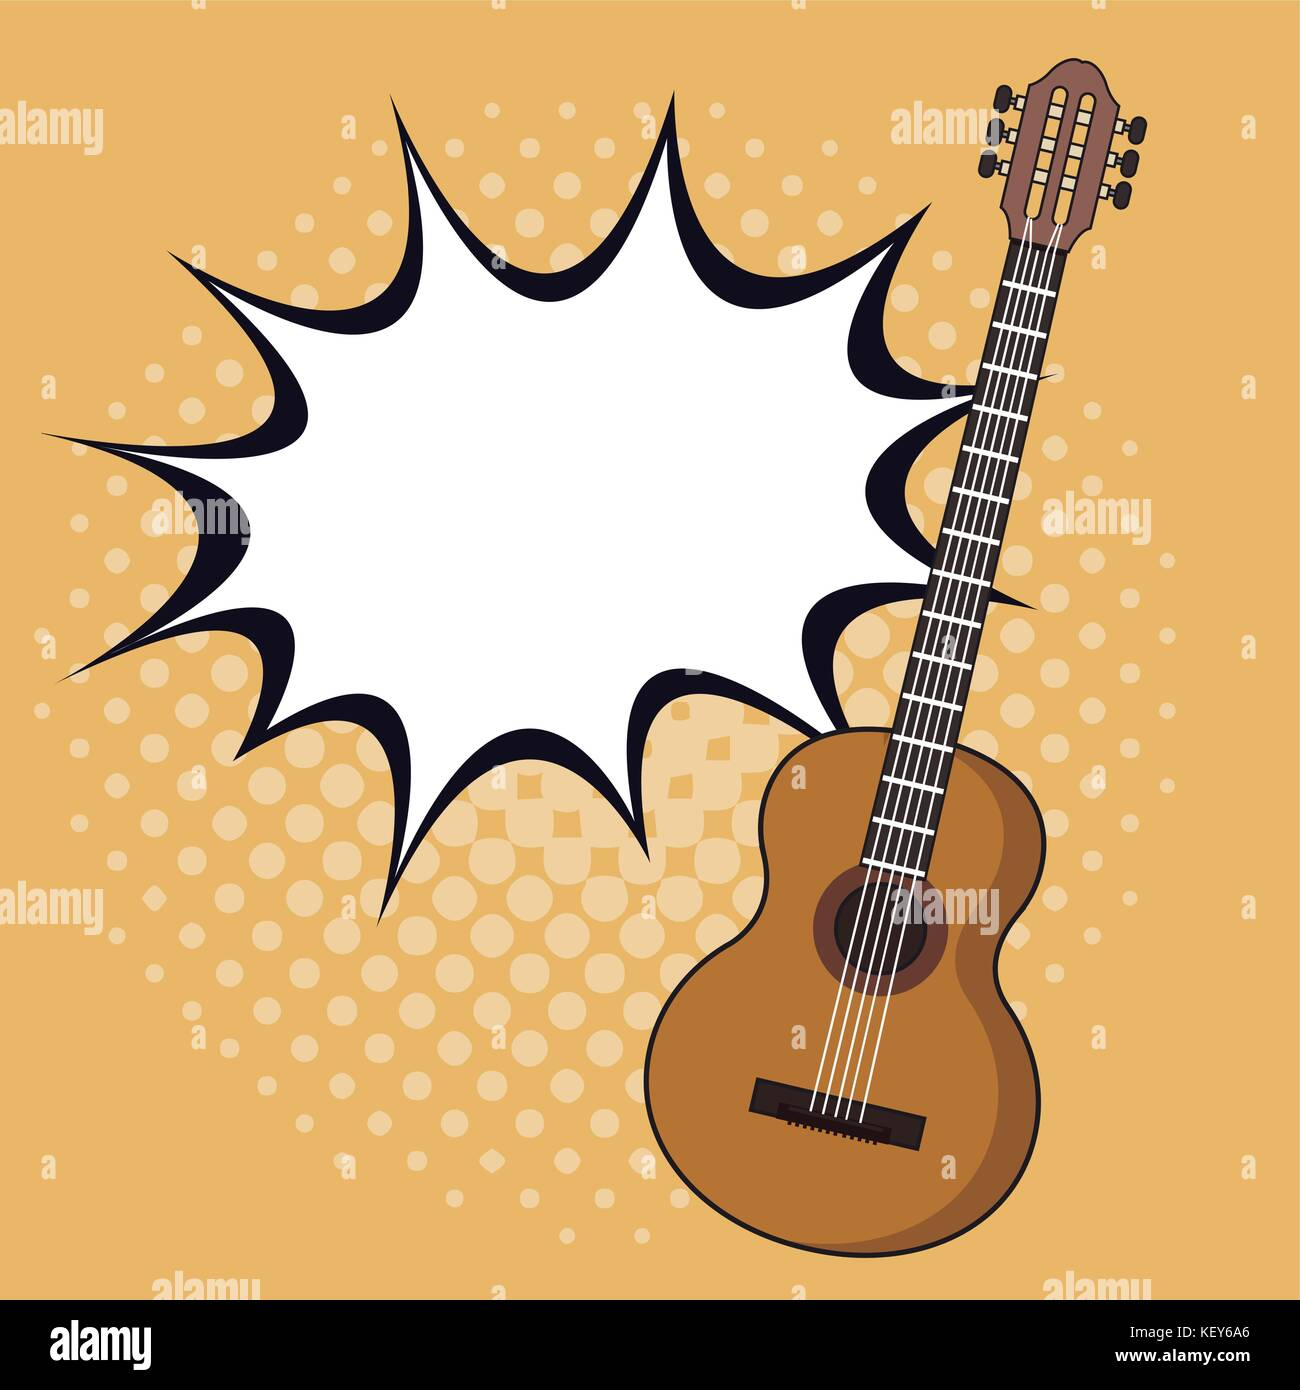 Guitar Art Stock Photos & Guitar Art Stock Images - Alamy